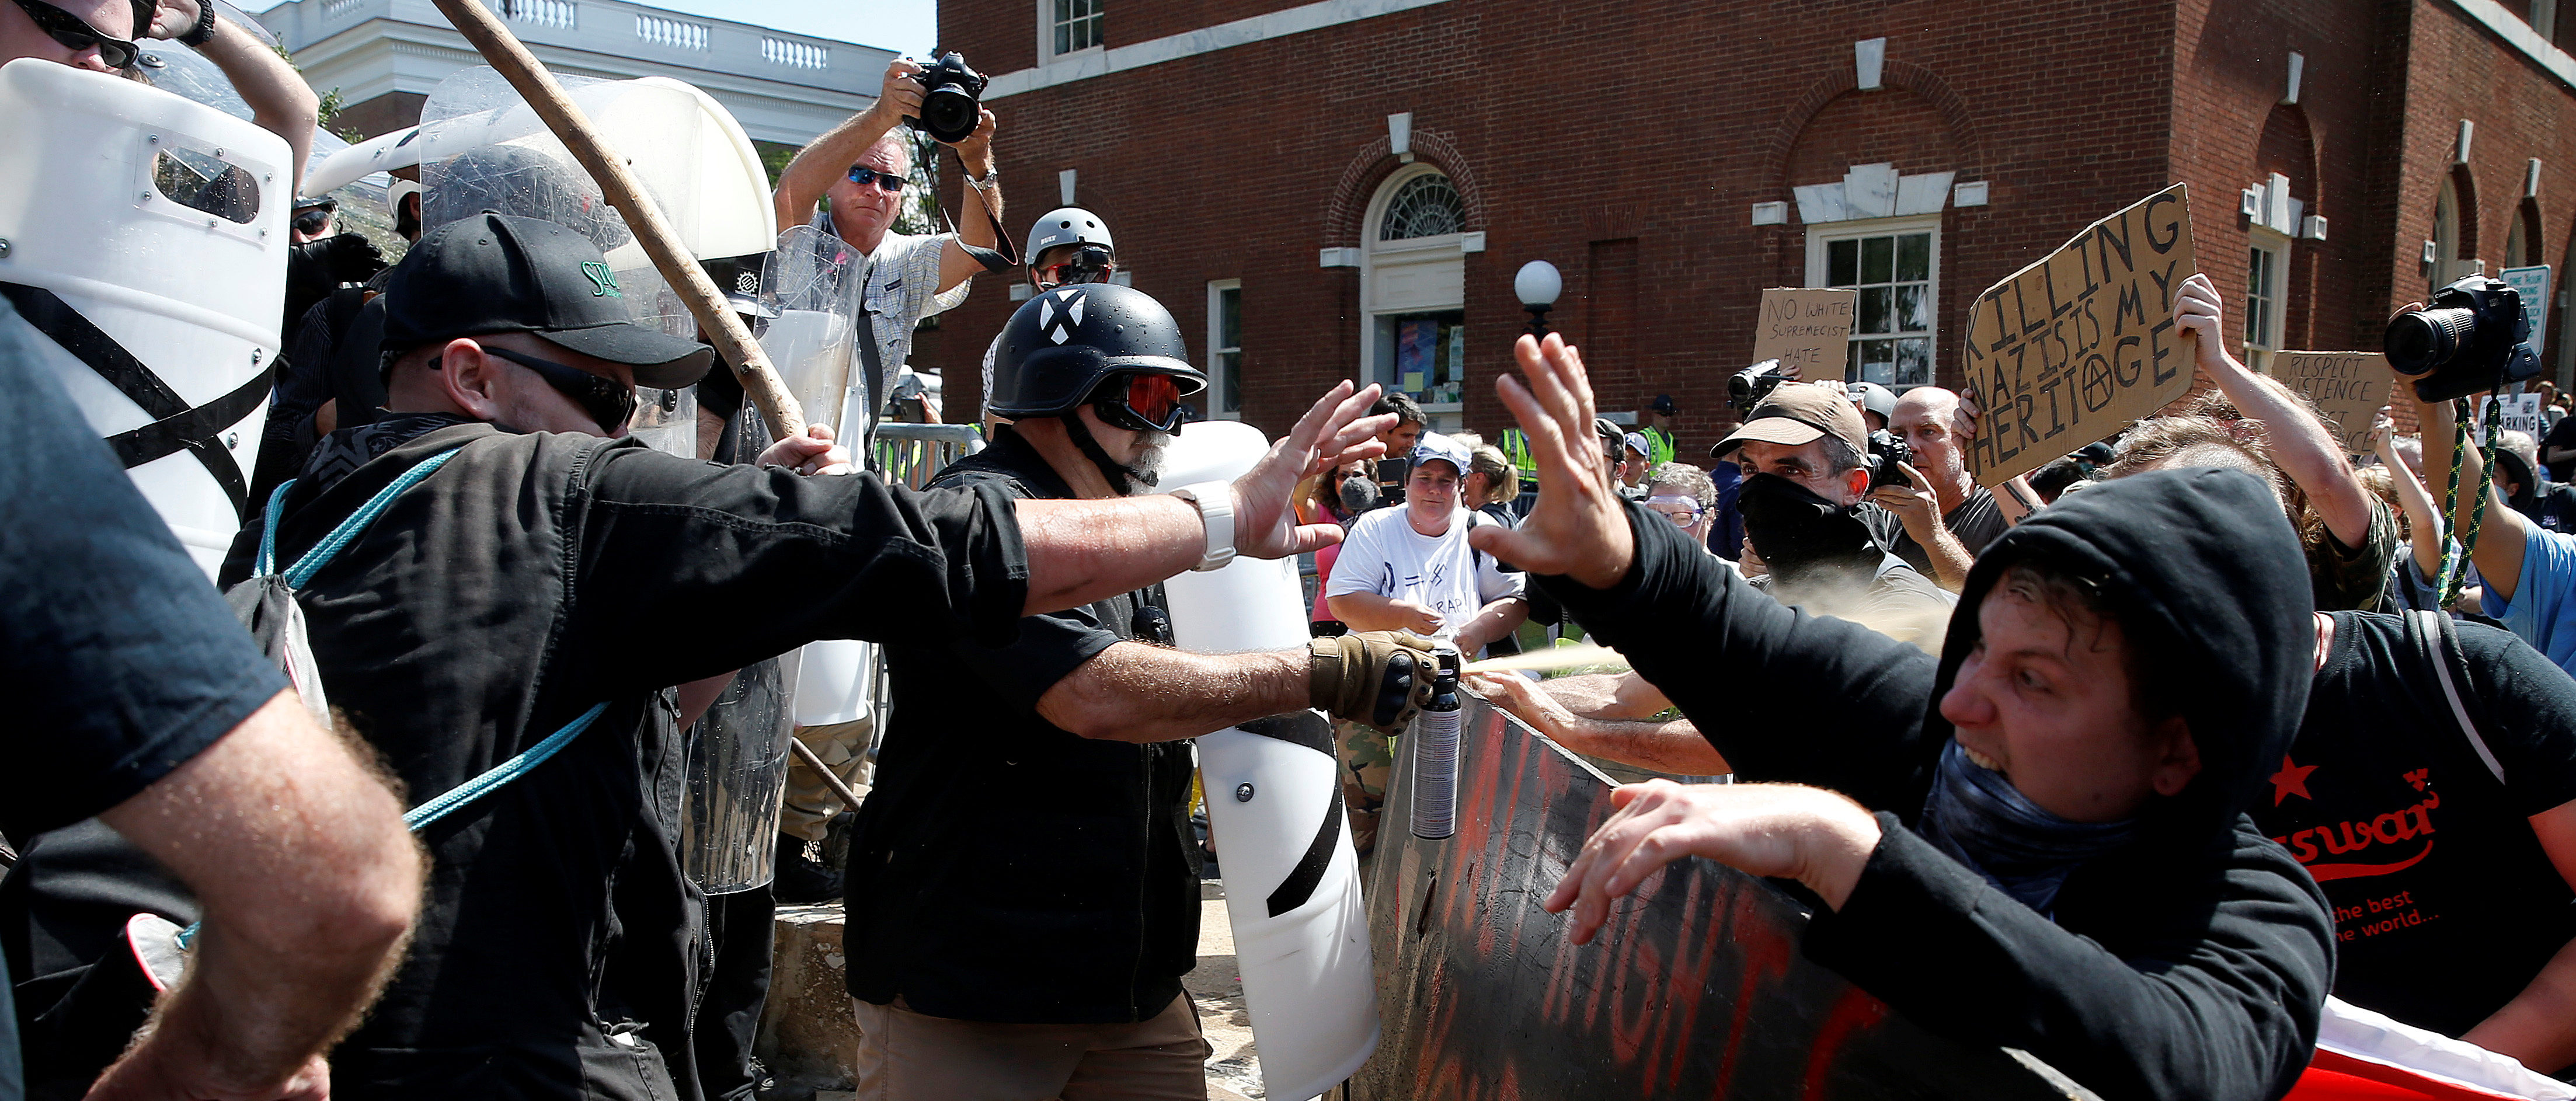 White supremacists clash with counter protesters at a rally in Charlottesville, Virginia, U.S., August 12, 2017. REUTERS/Joshua Roberts - RTS1BJU2